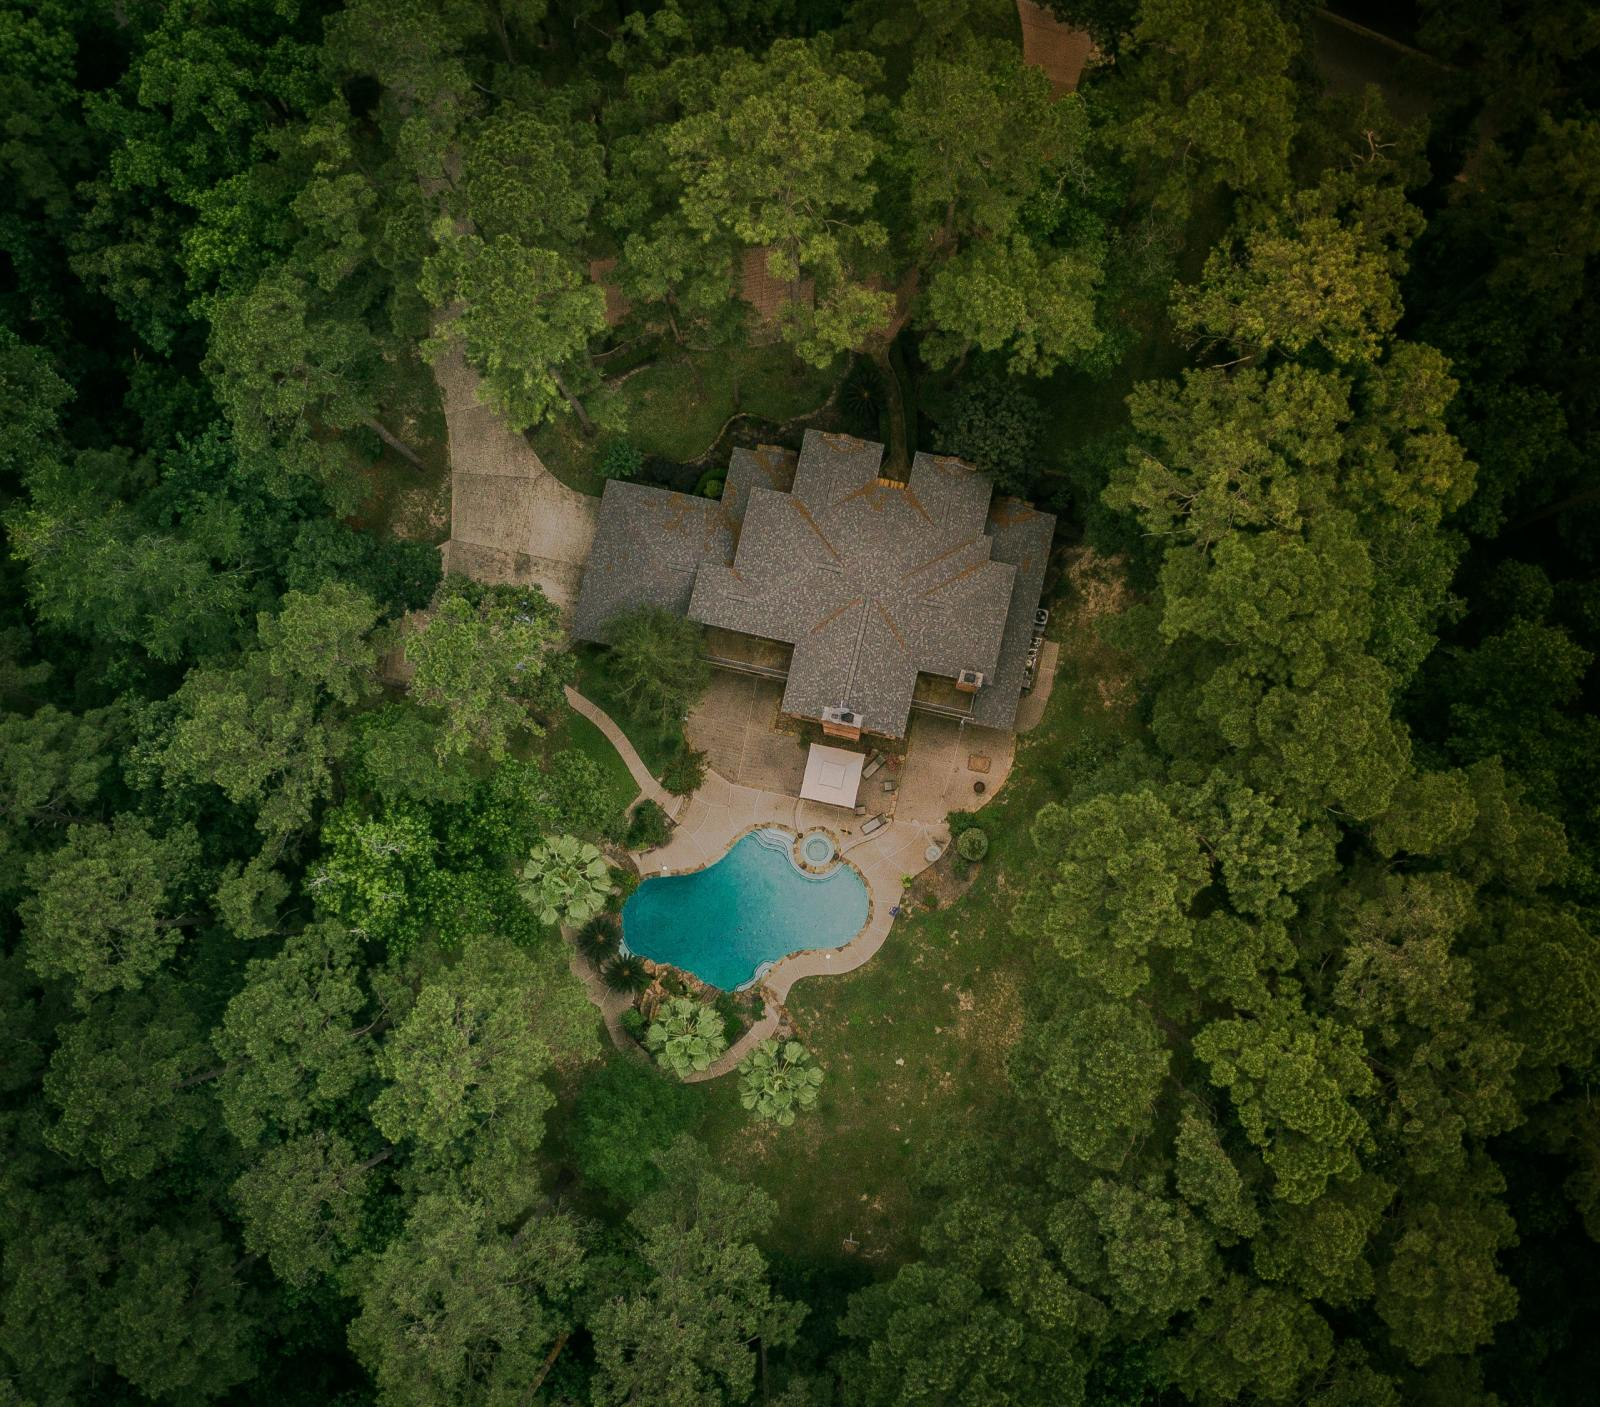 Aerial view, from drone cam, of forested area with a house in the middle.